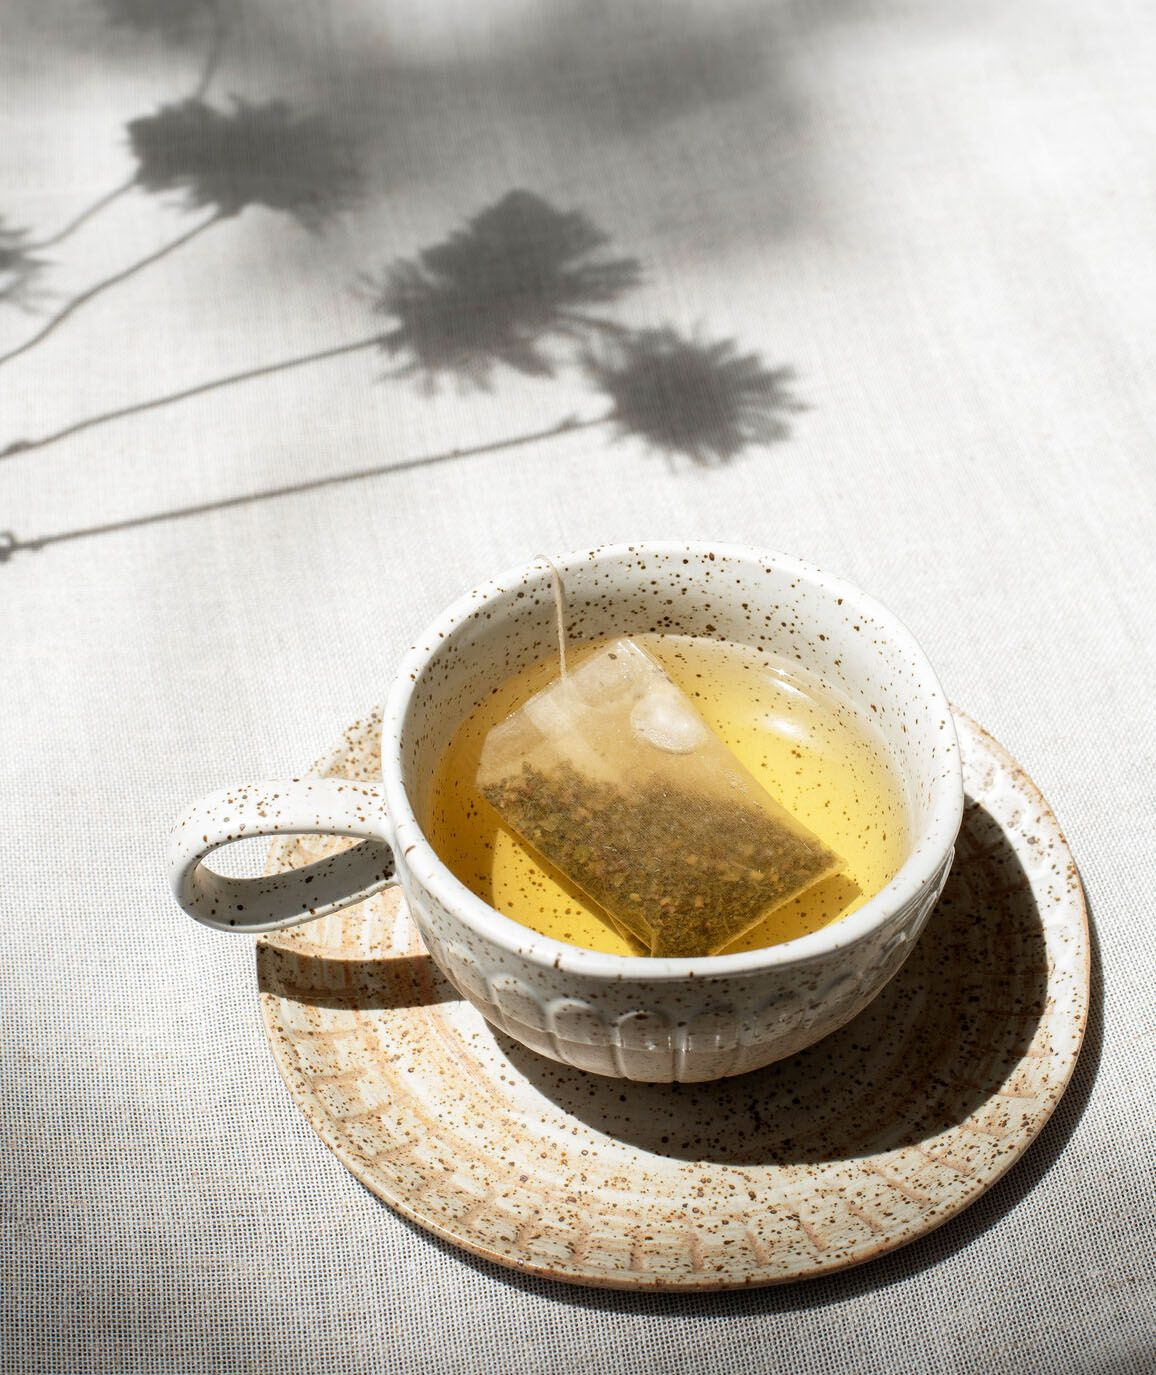 11 Teas to Help Reduce Bloating